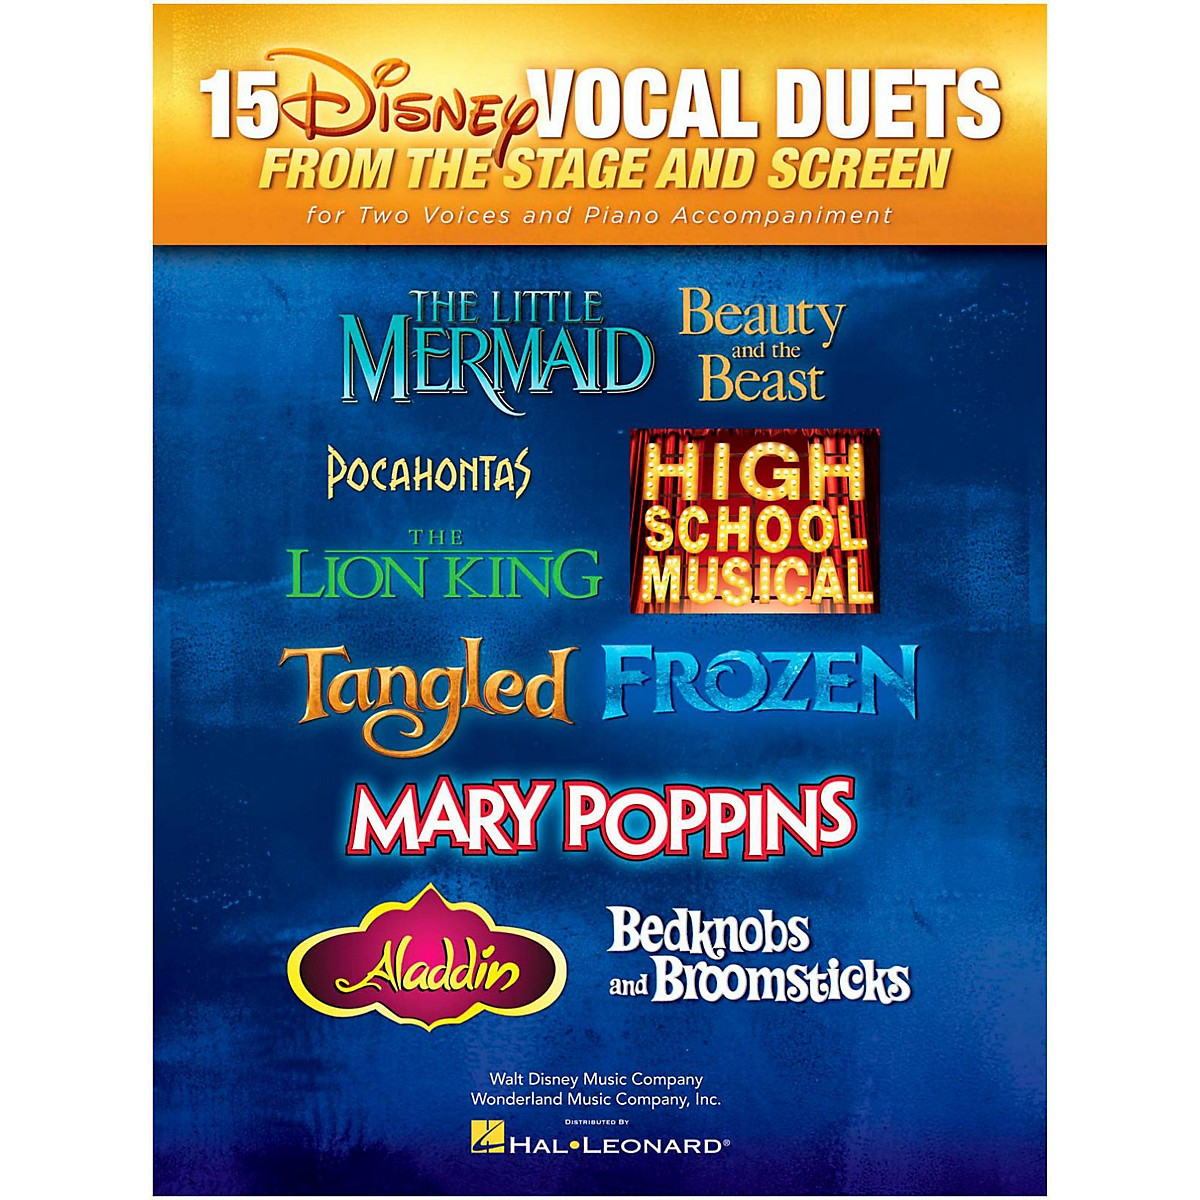 Hal Leonard 15 Disney Vocal Duets from Stage and Screen for 2 Voices And Piano Accompaniment